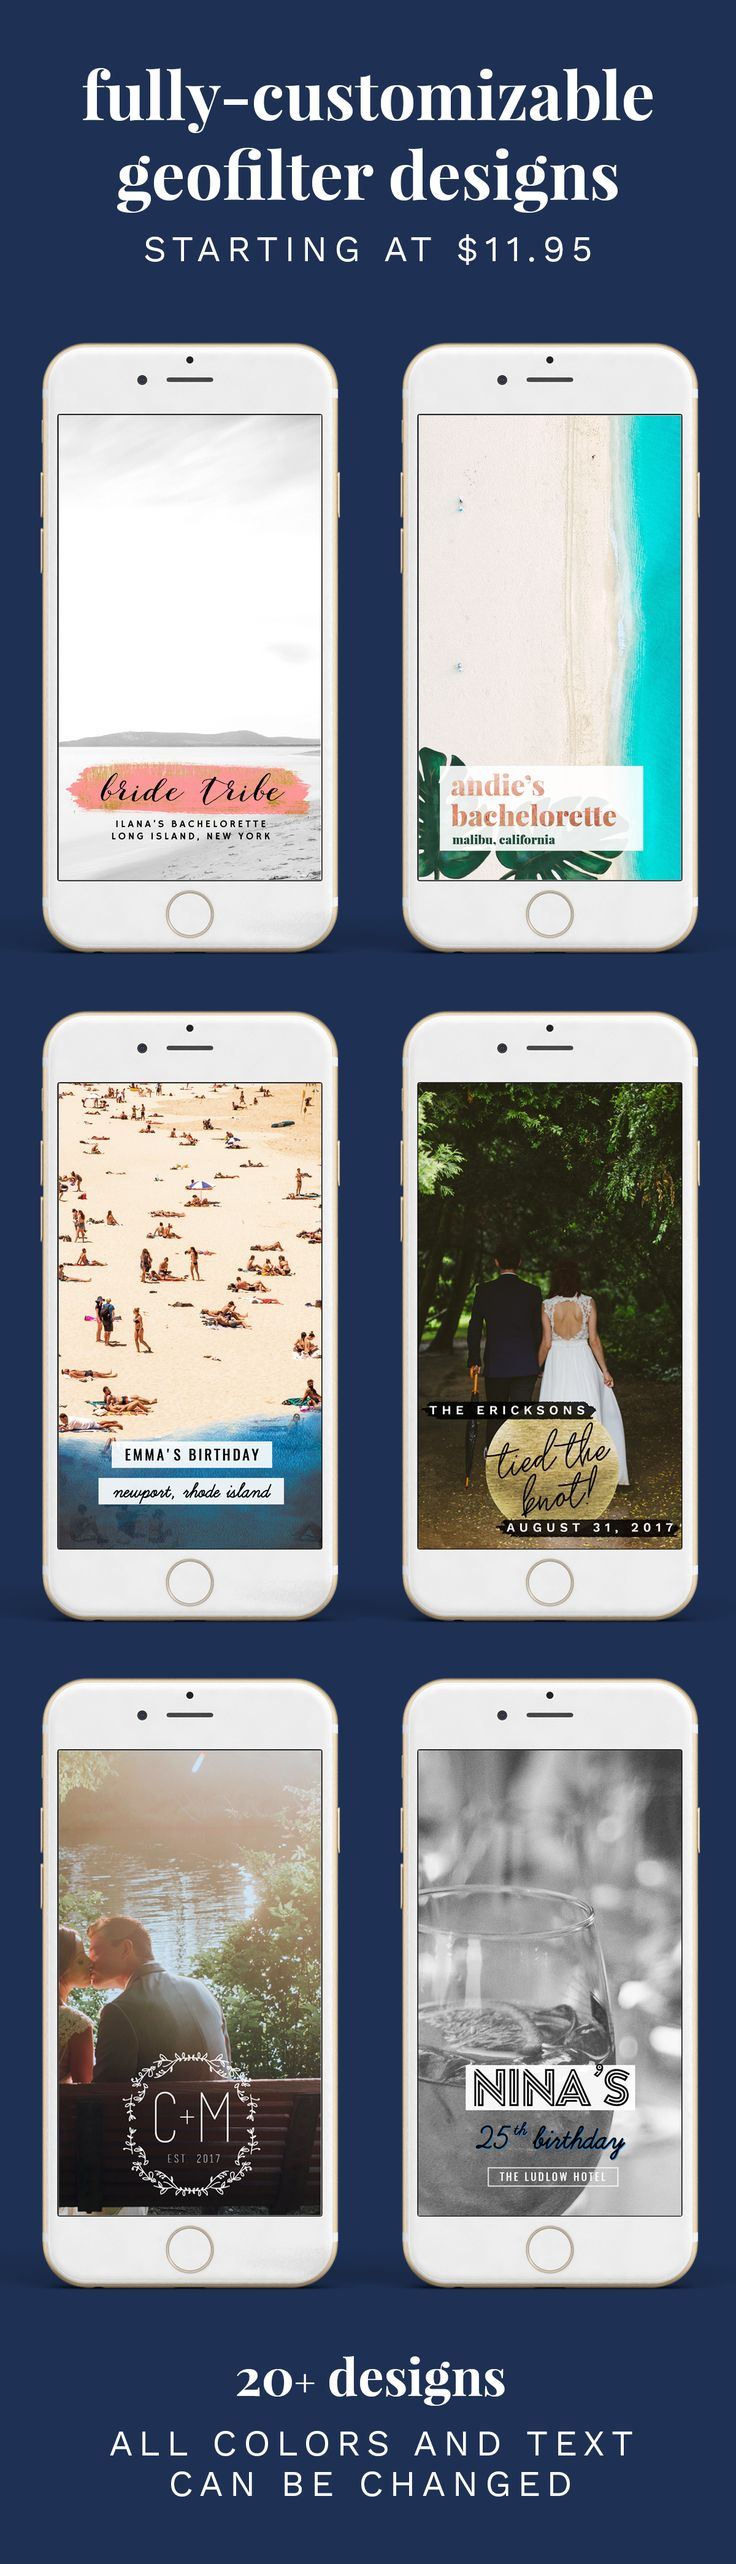 Snapchat Geofilter Designs that can be totally customized for weddings, bachelorette parties, birthdays or any event! xo https://www.etsy.com/shop/HaleyGrandDesigns